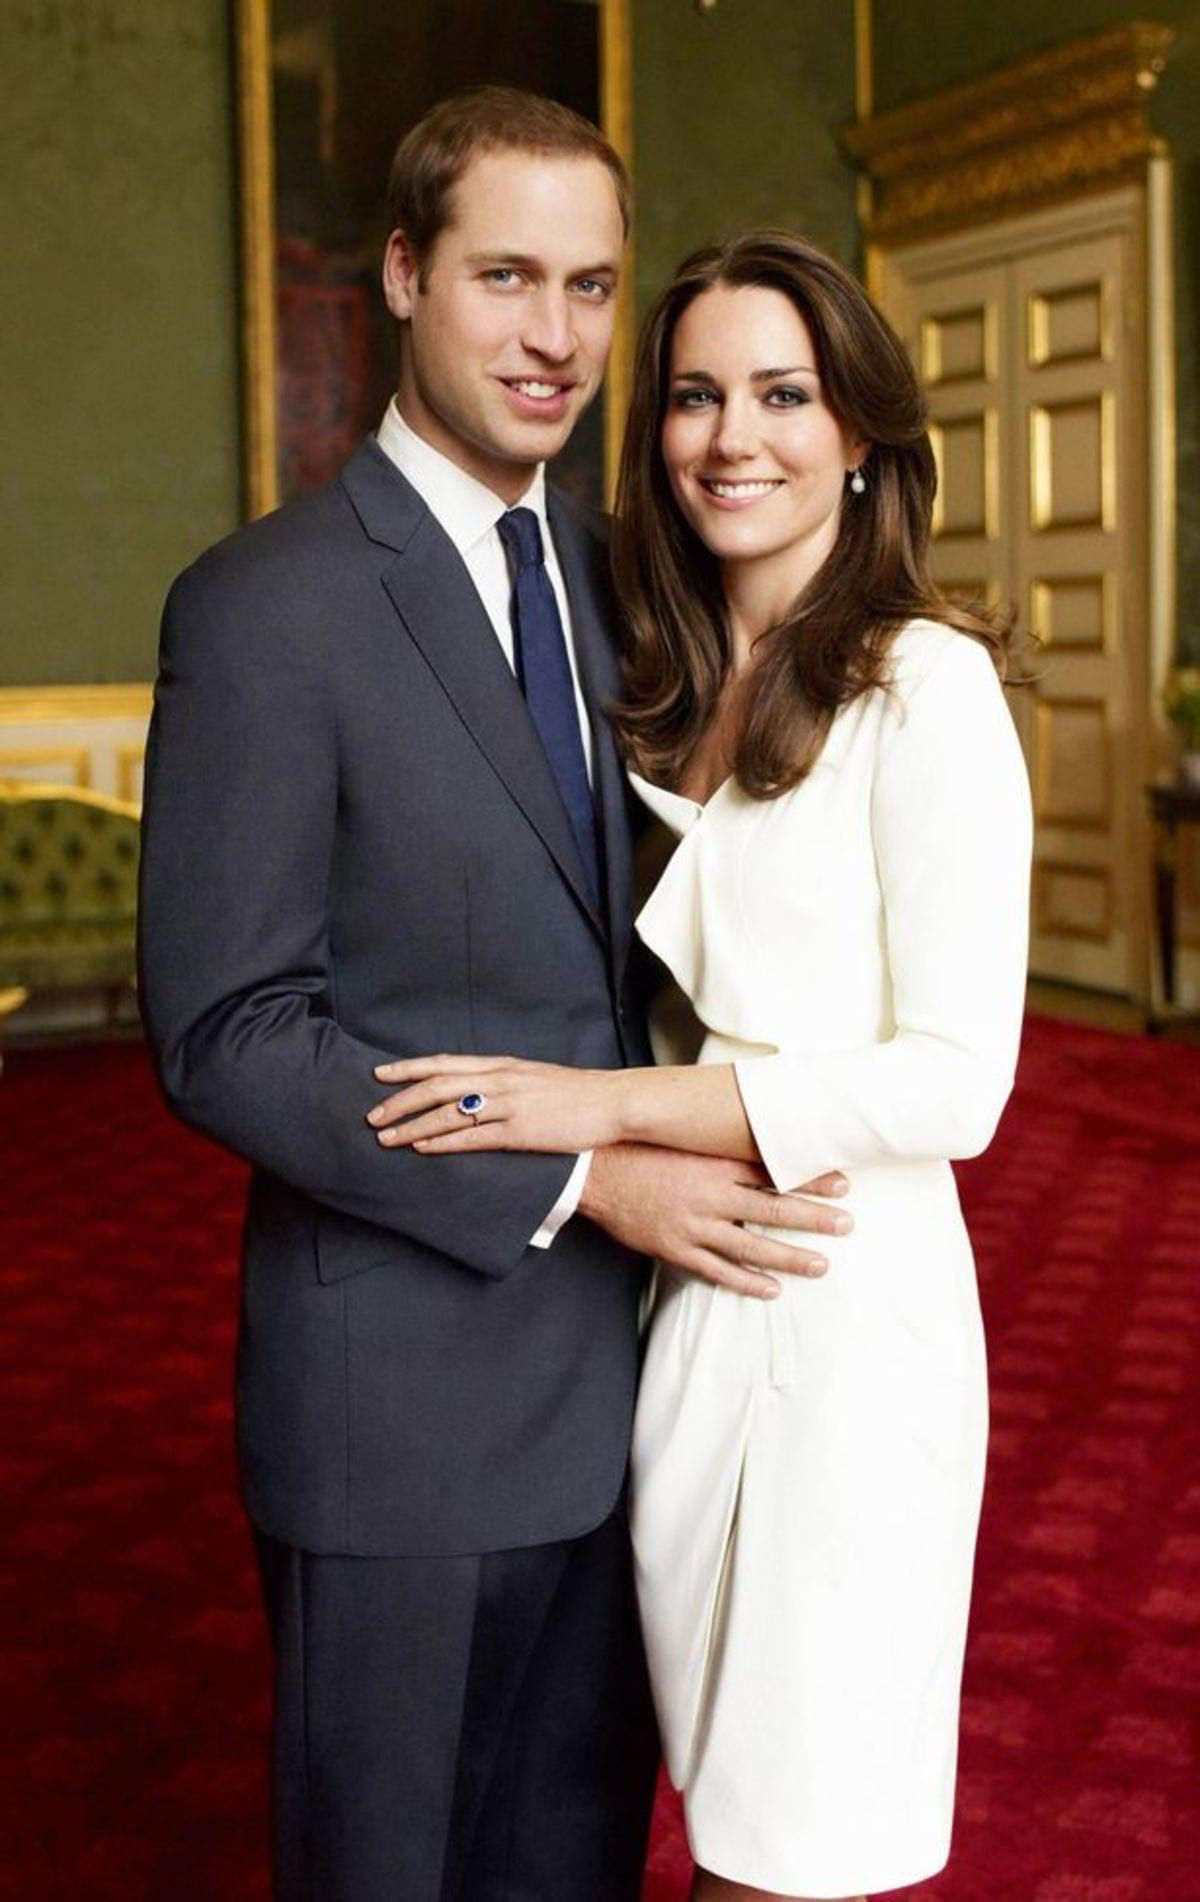 Prince-William-and-Miss-Catherine-Middleton